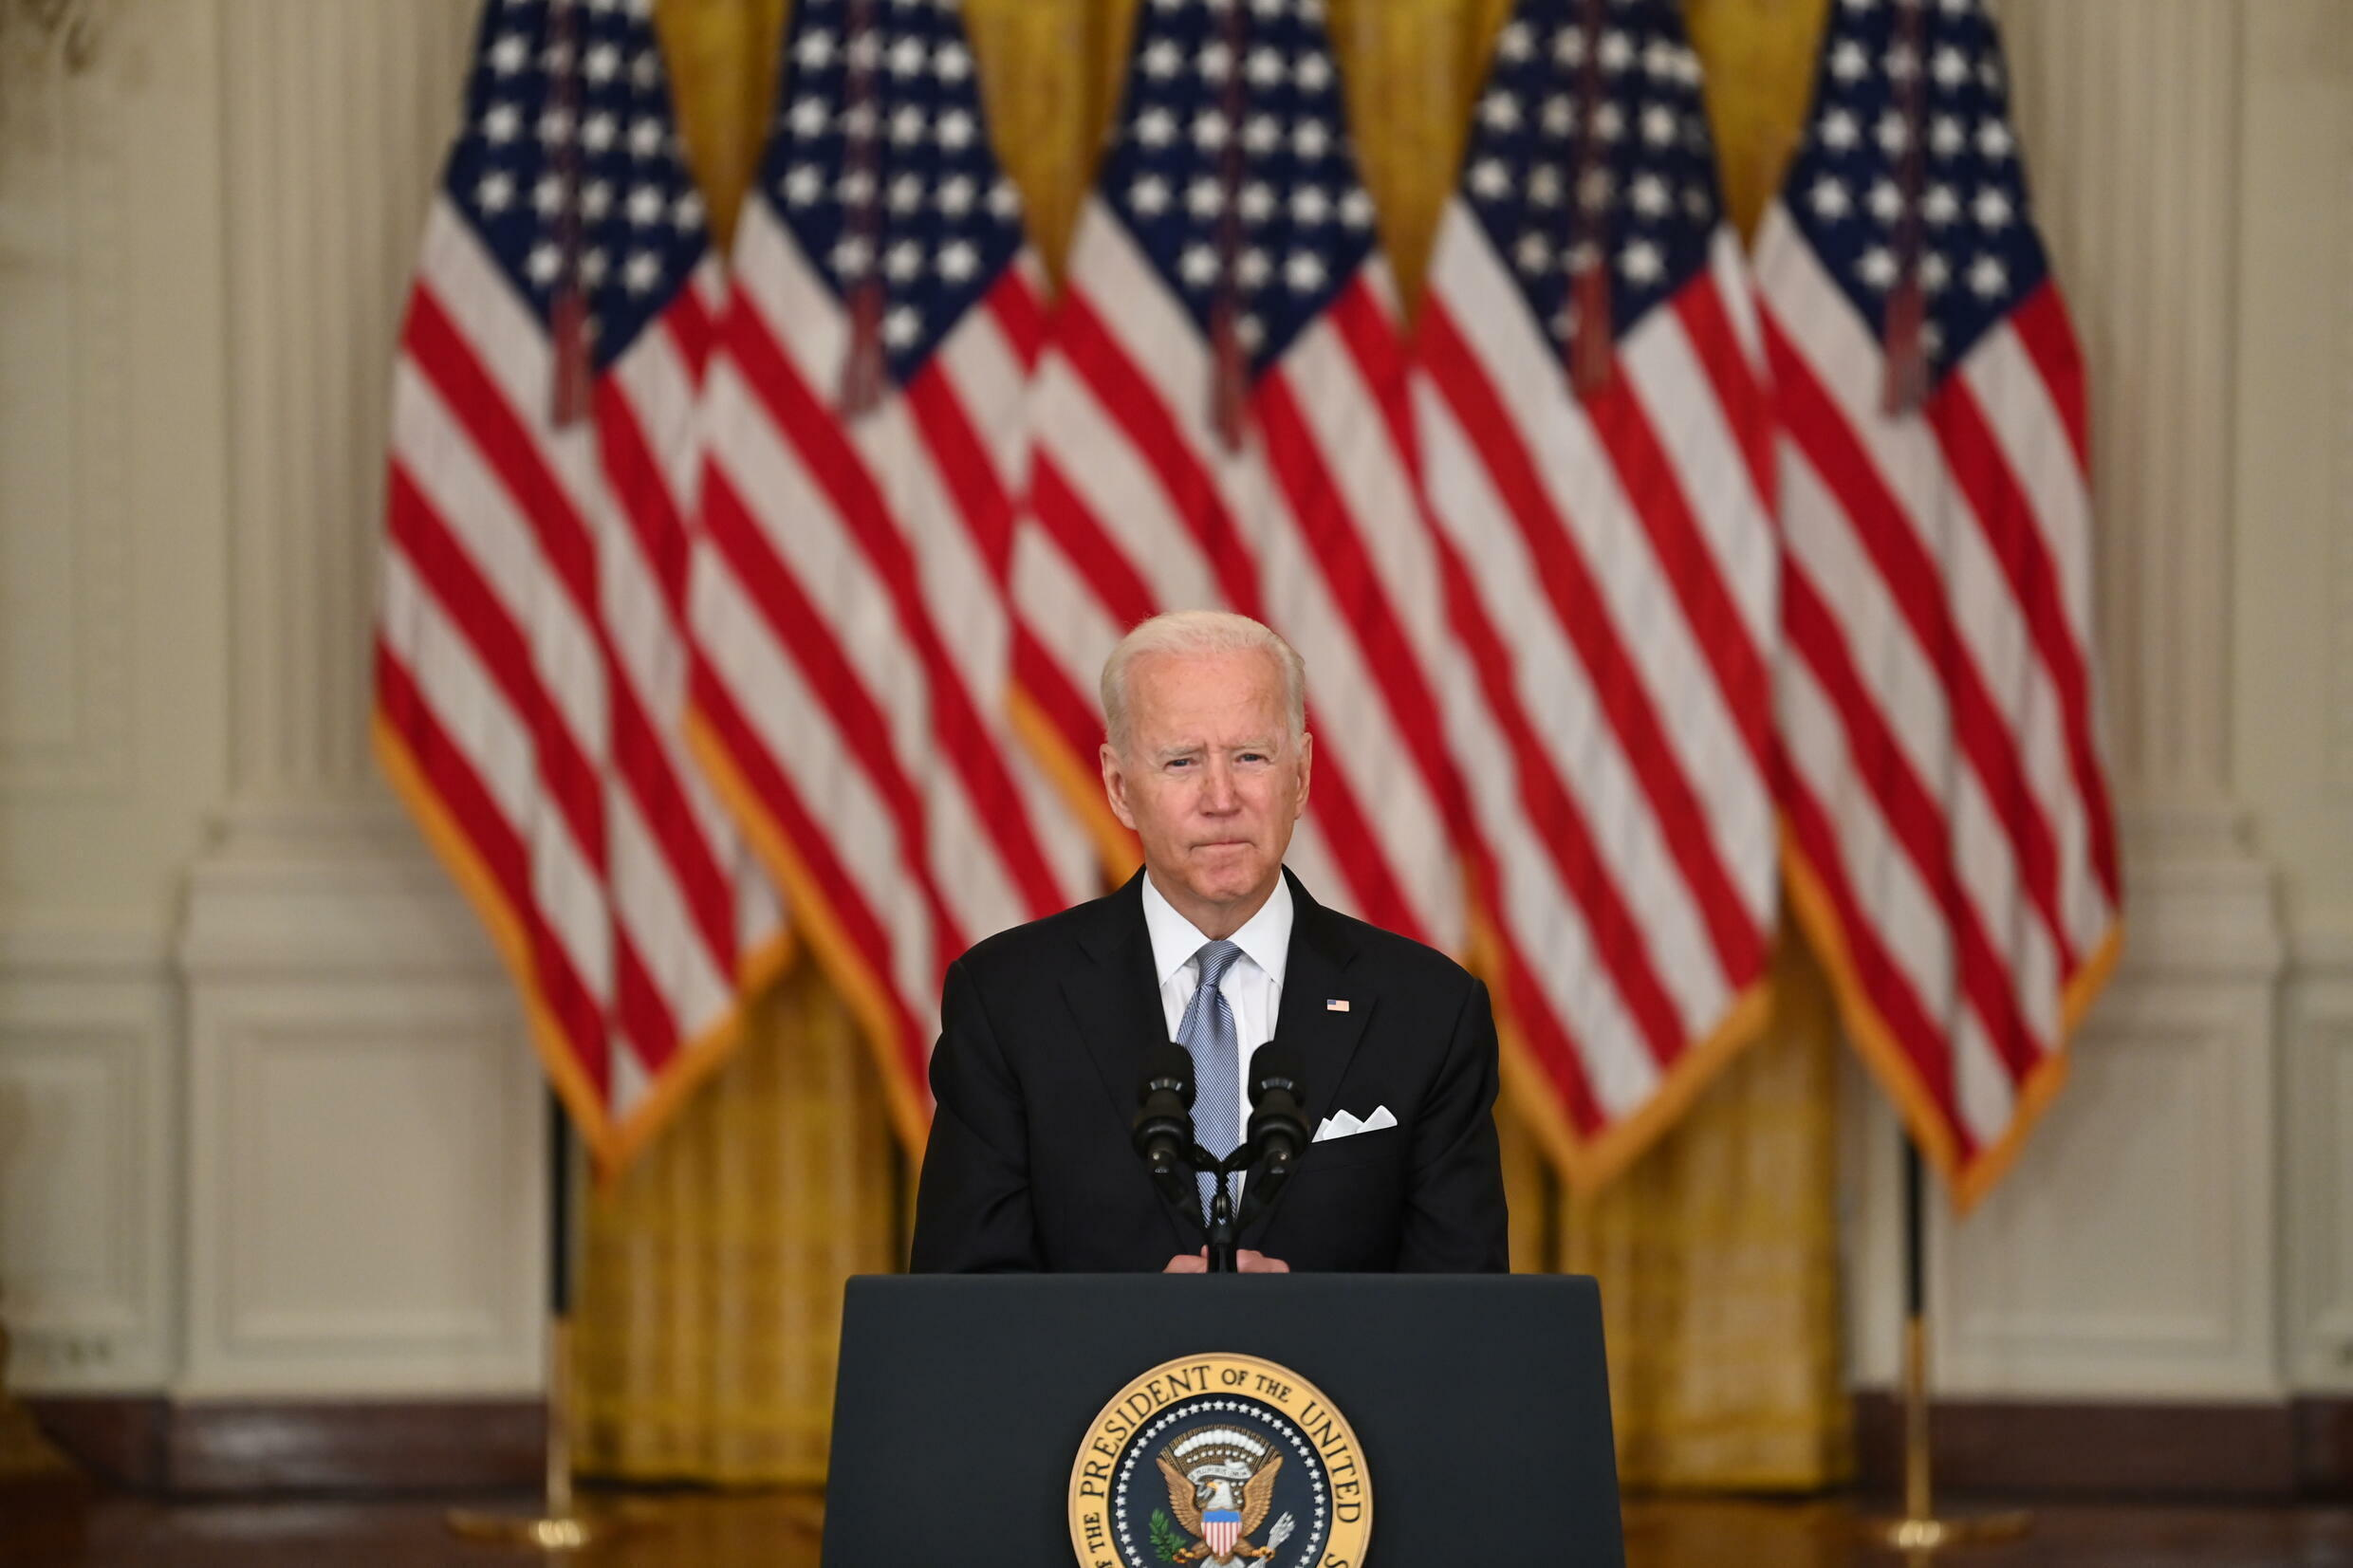 US President Joe Biden defended his decision to pull US troops out of Afghanistan